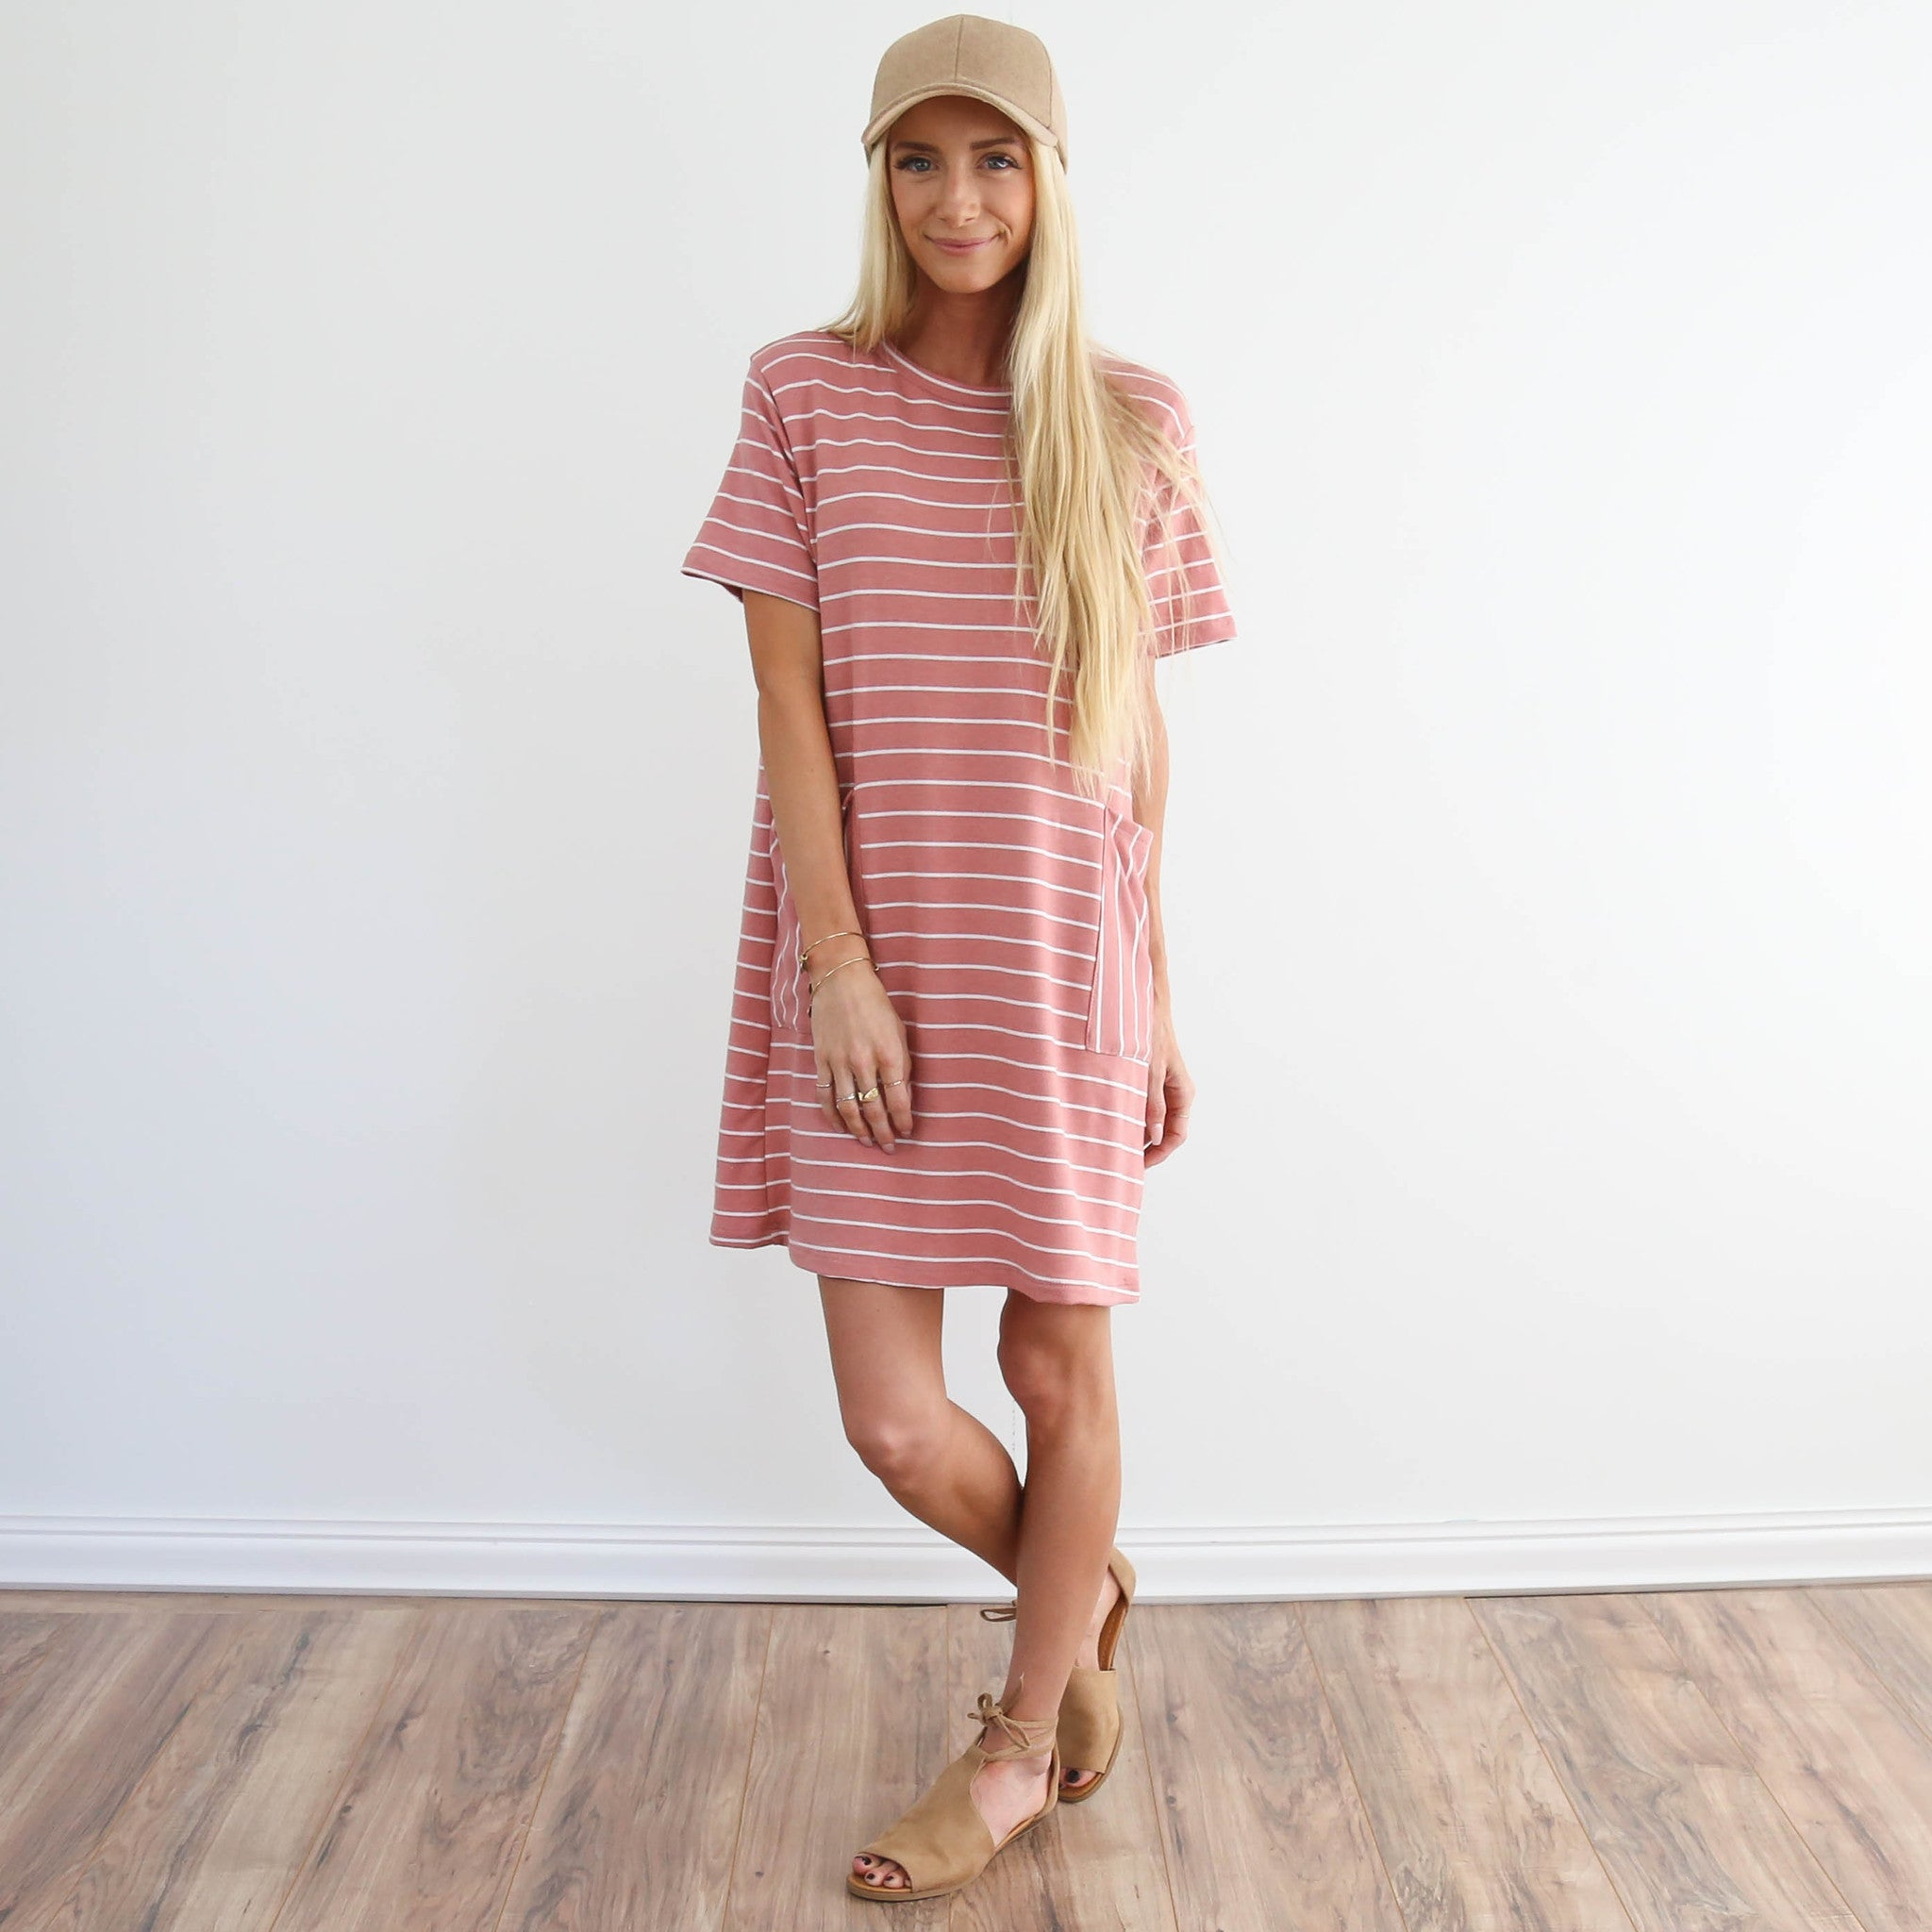 S & Co. Wynnie Pocket Dress in Mauve